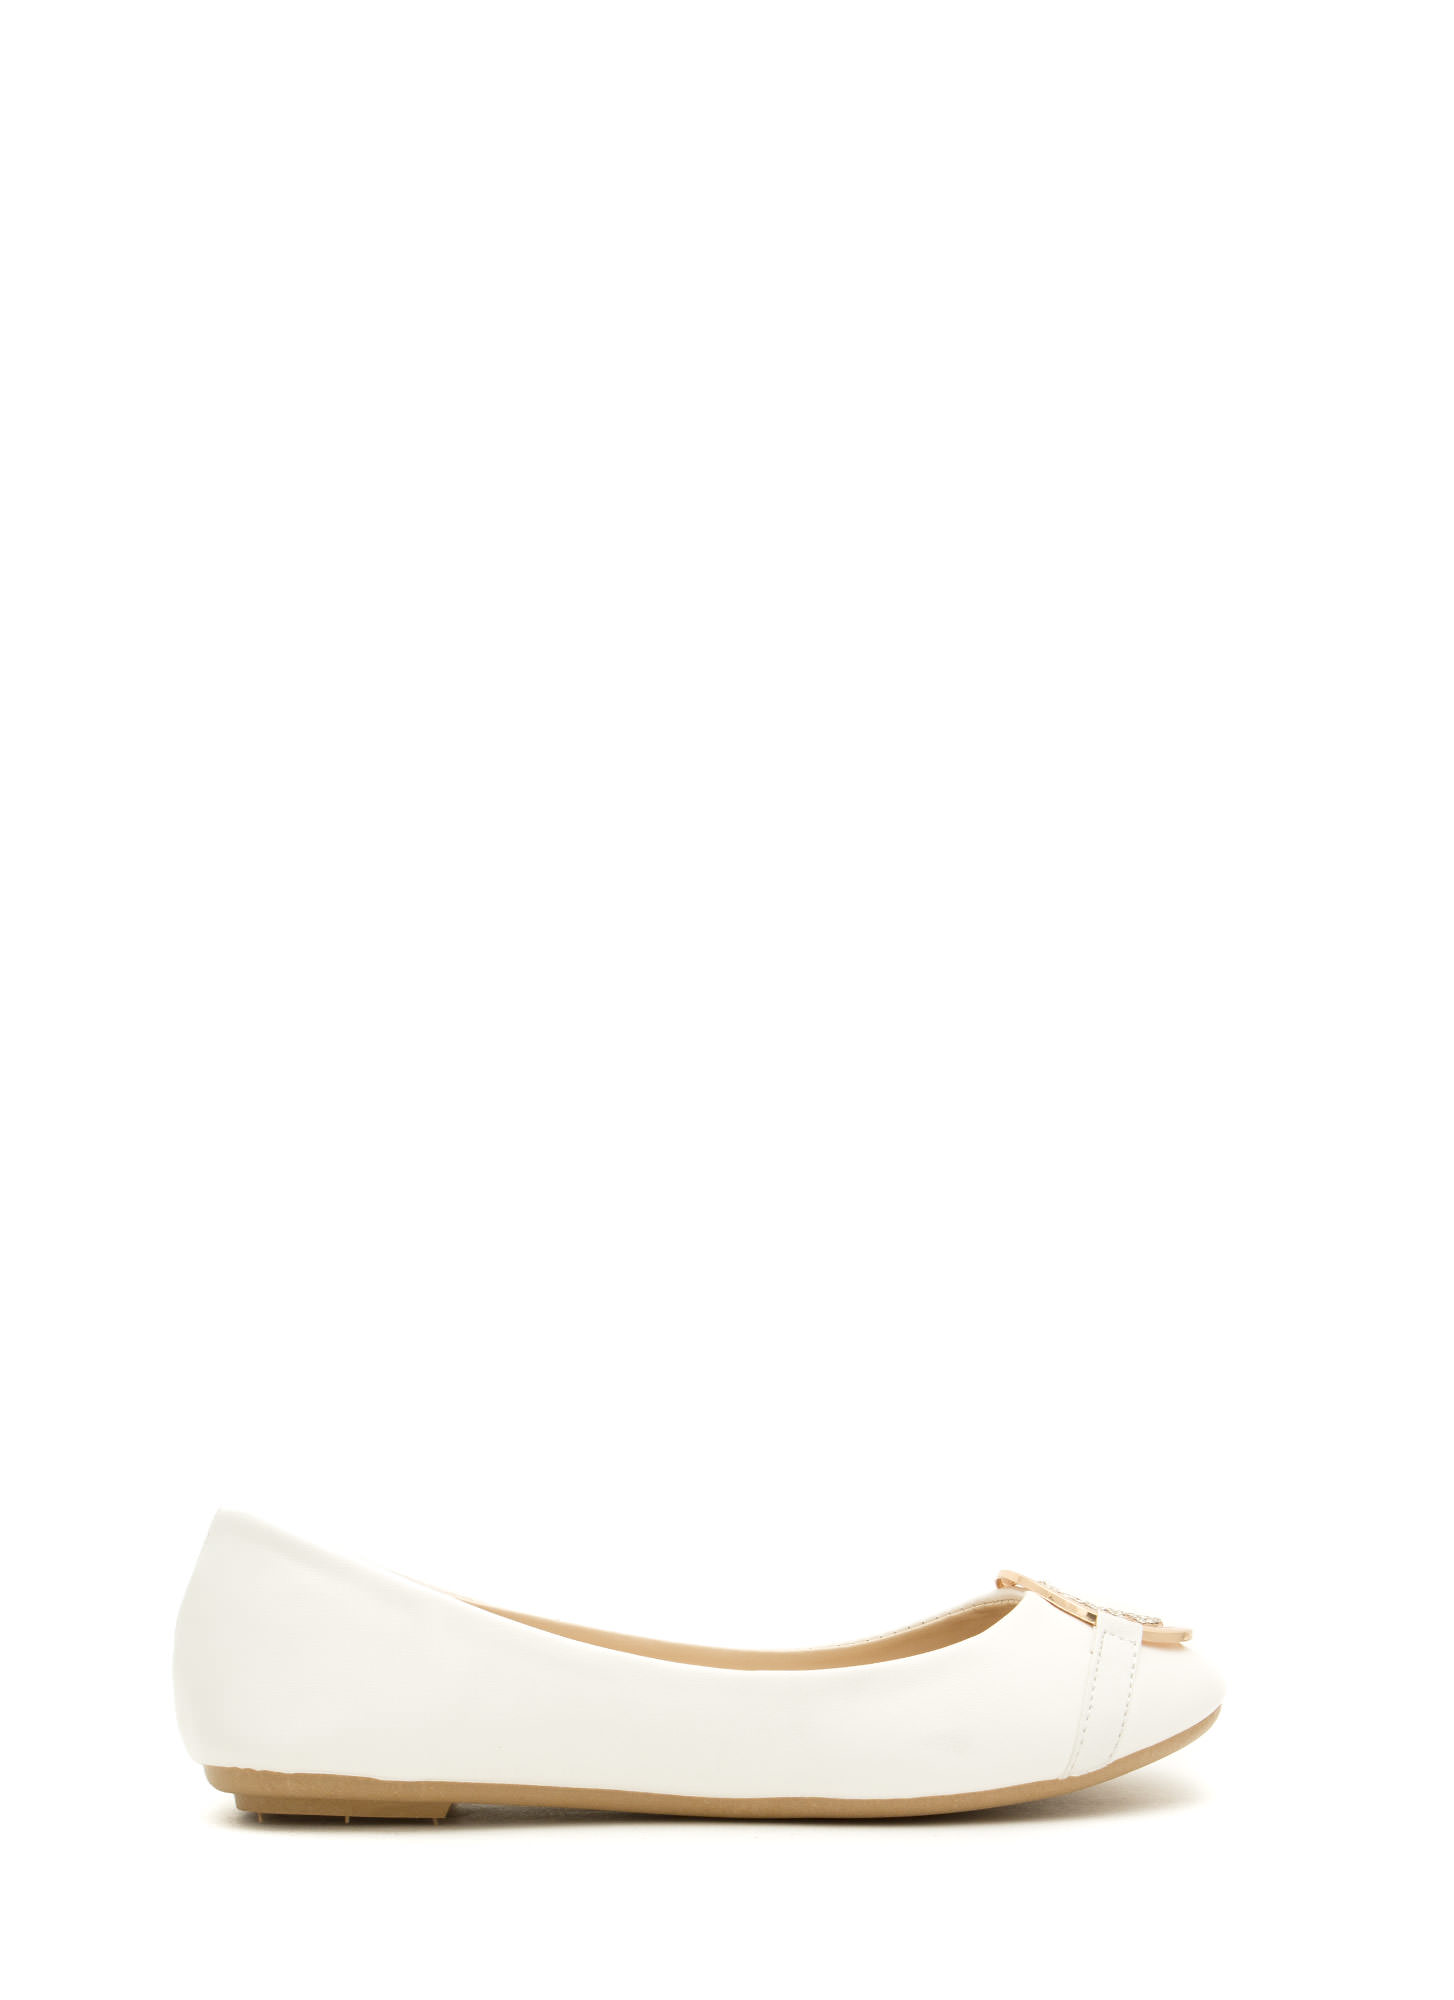 Medal Contender Faux Leather Flats WHITE